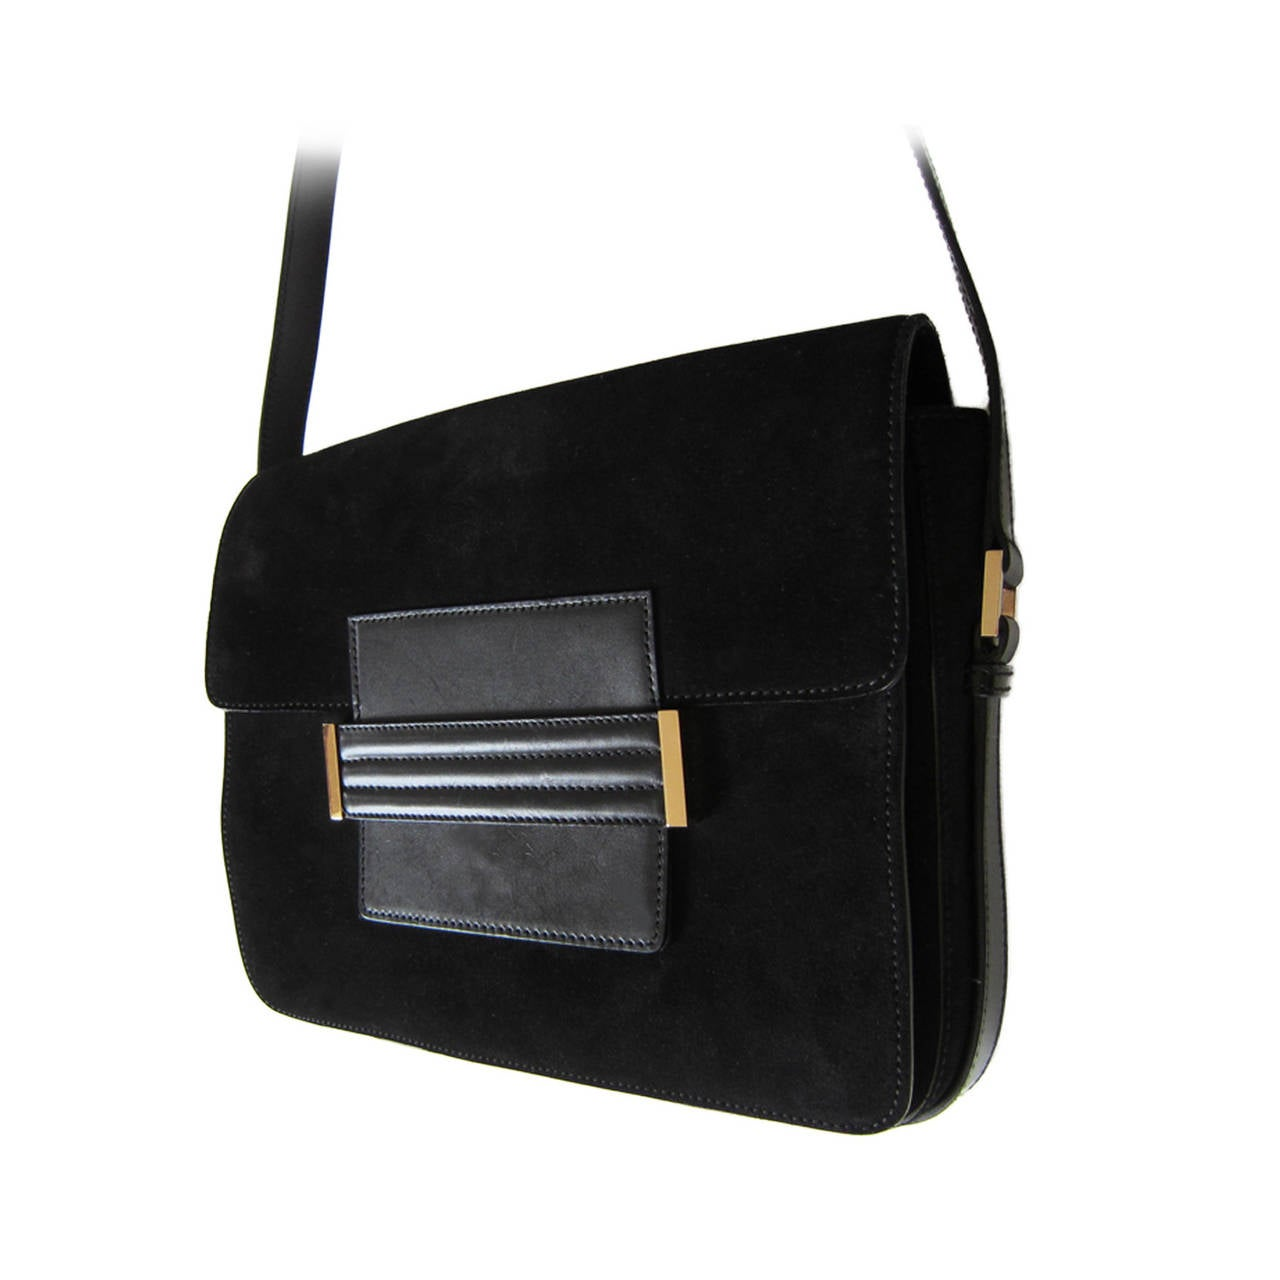 Yves Saint Laurent Tom Ford Black Suede Bag at 1stdibs